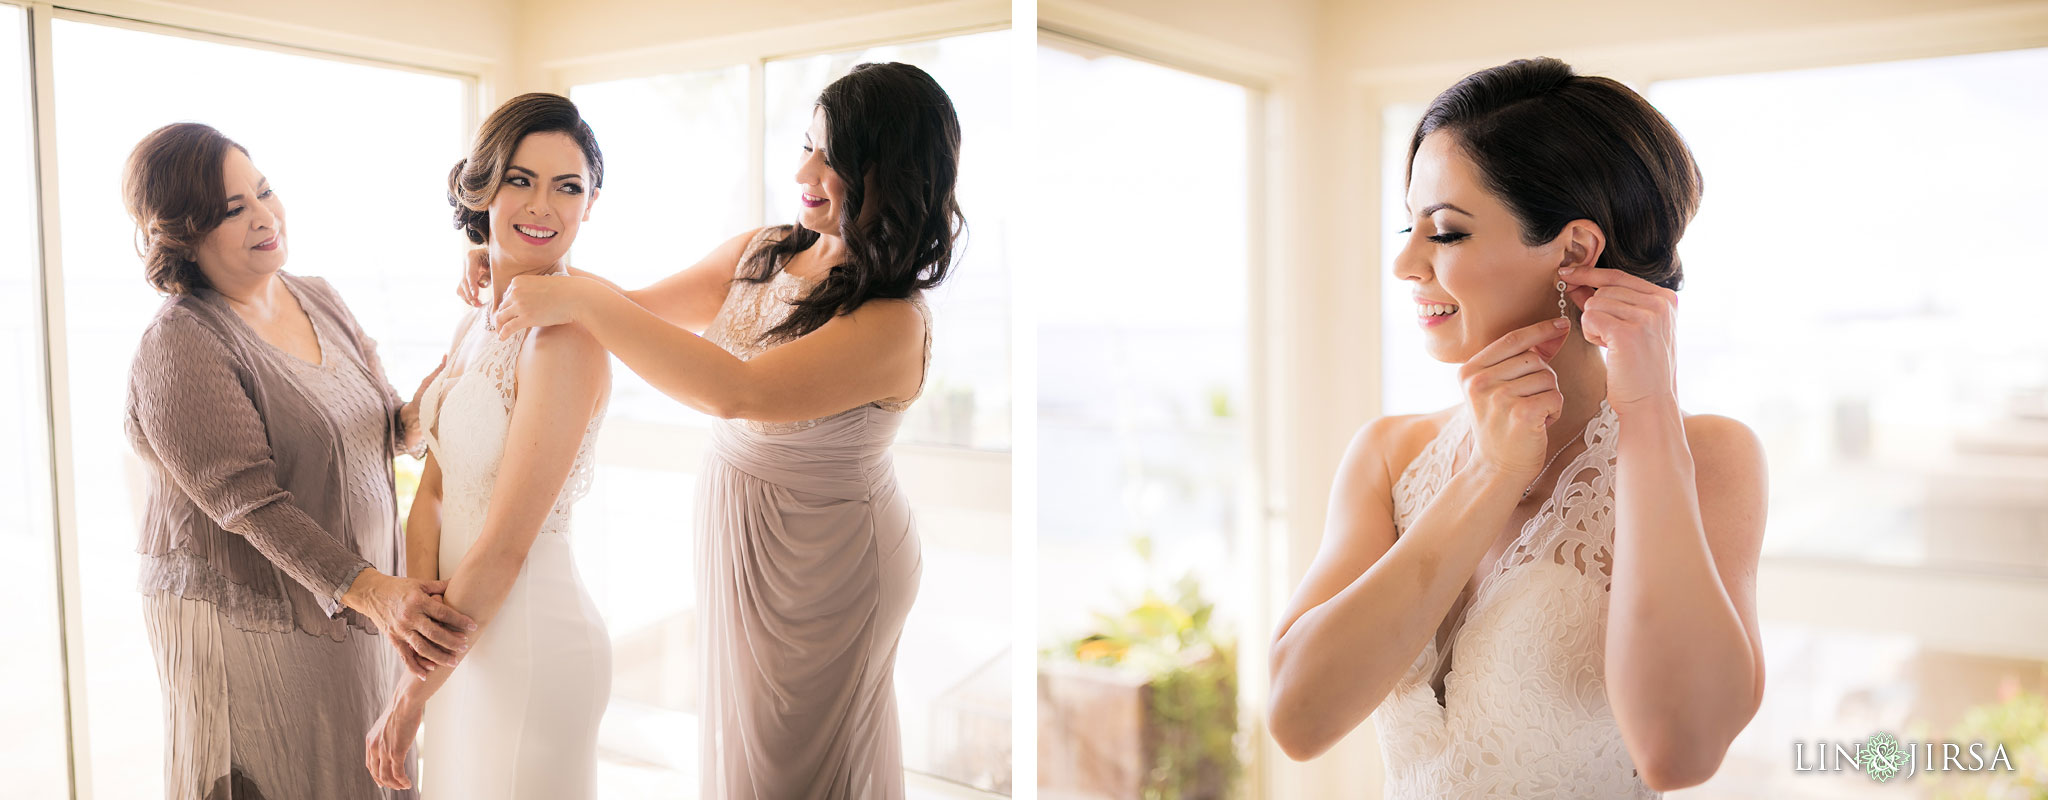 03 surf and sand resort laguna beach bride photography